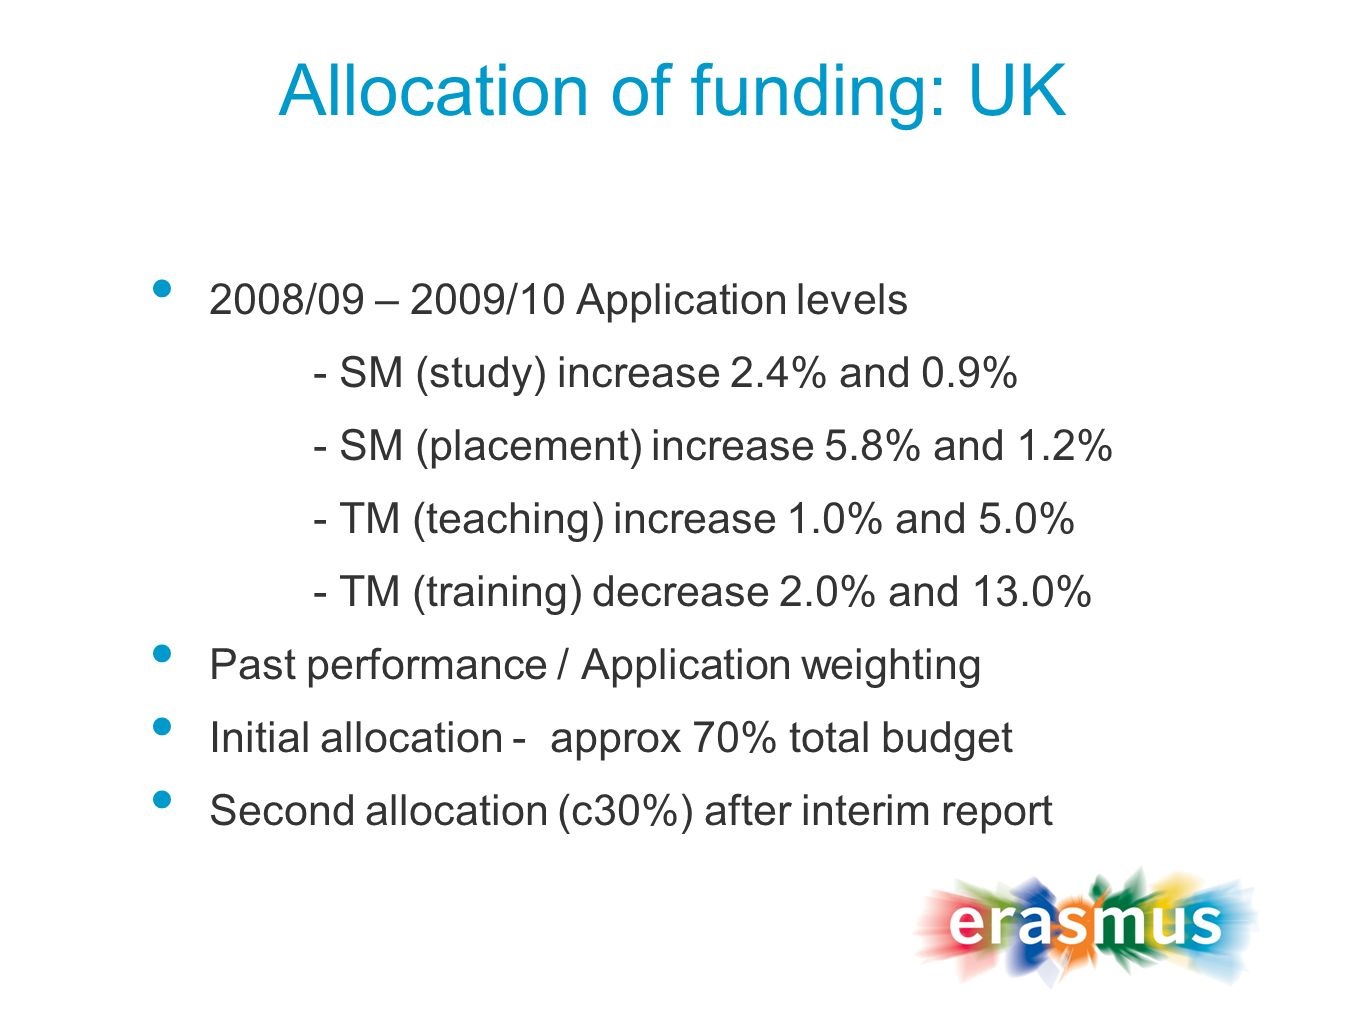 Allocation of funding: UK 2008/09 – 2009/10 Application levels - SM (study) increase 2.4% and 0.9% - SM (placement) increase 5.8% and 1.2% - TM (teaching) increase 1.0% and 5.0% - TM (training) decrease 2.0% and 13.0% Past performance / Application weighting Initial allocation - approx 70% total budget Second allocation (c30%) after interim report